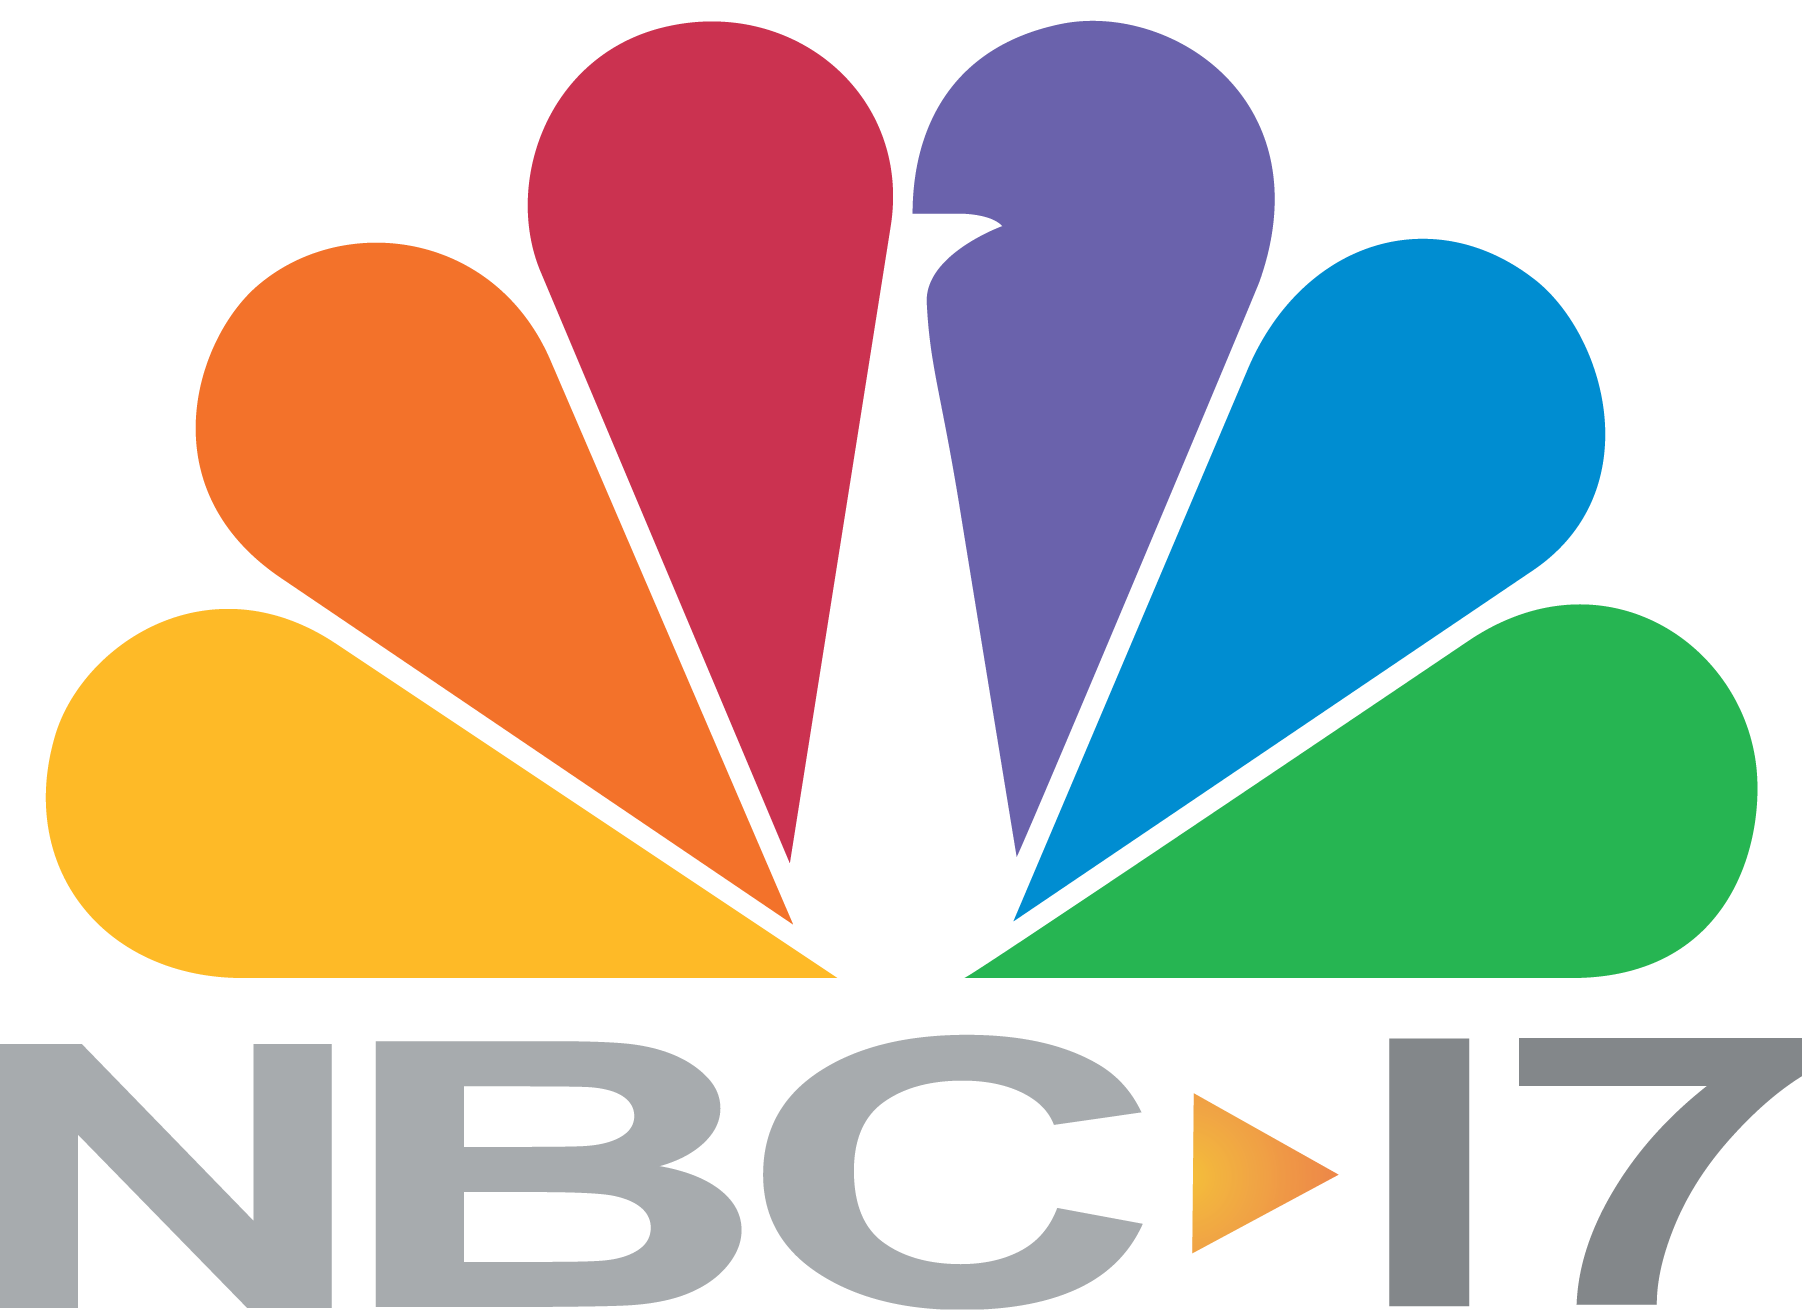 Image - WNCN NBC 17.png - Logopedia, the logo and branding site